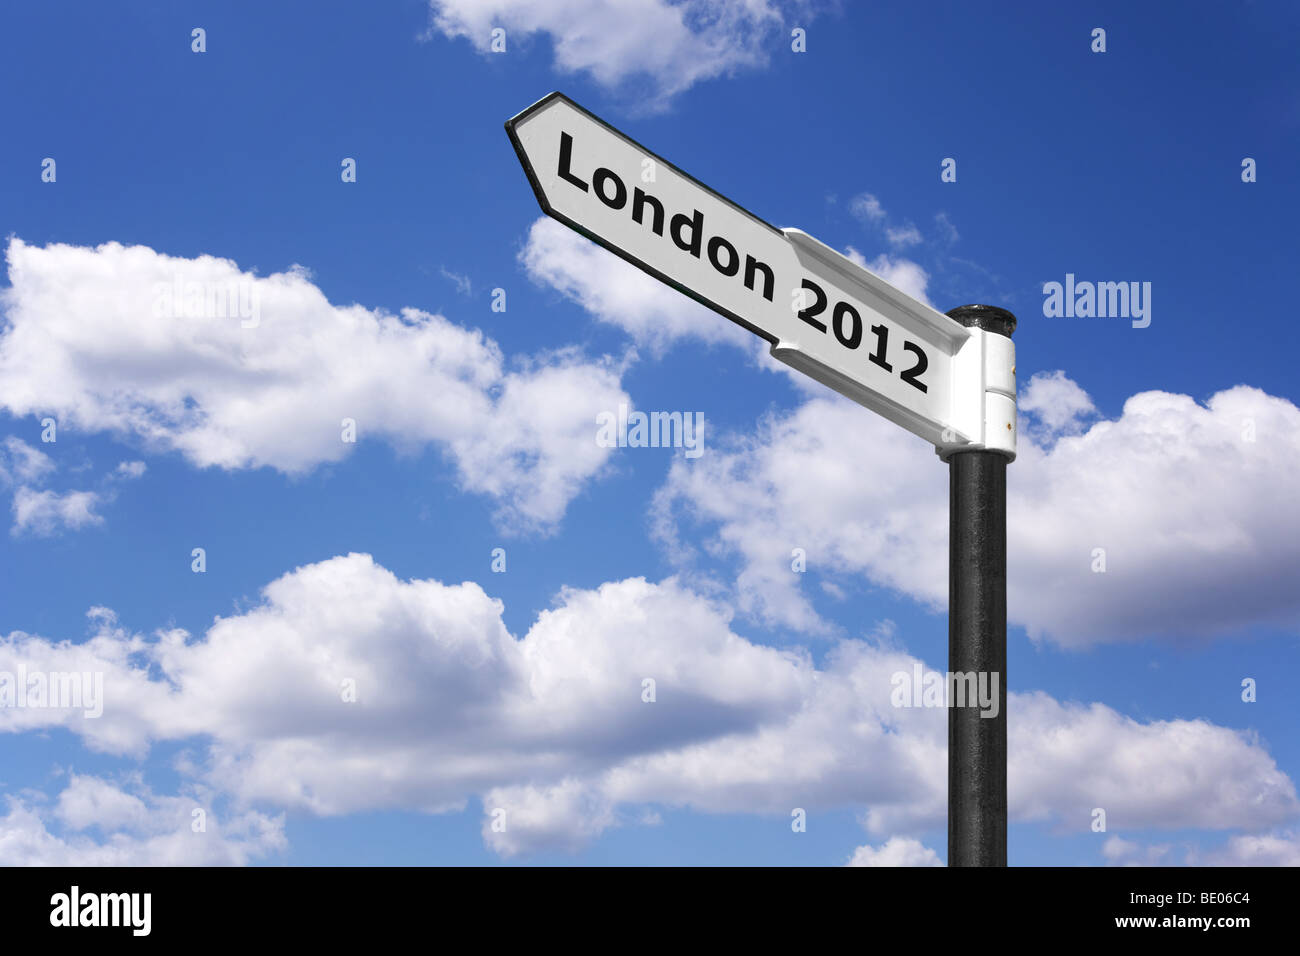 Signpost indicating London 2012 the place and date of the next Olympic games. - Stock Image